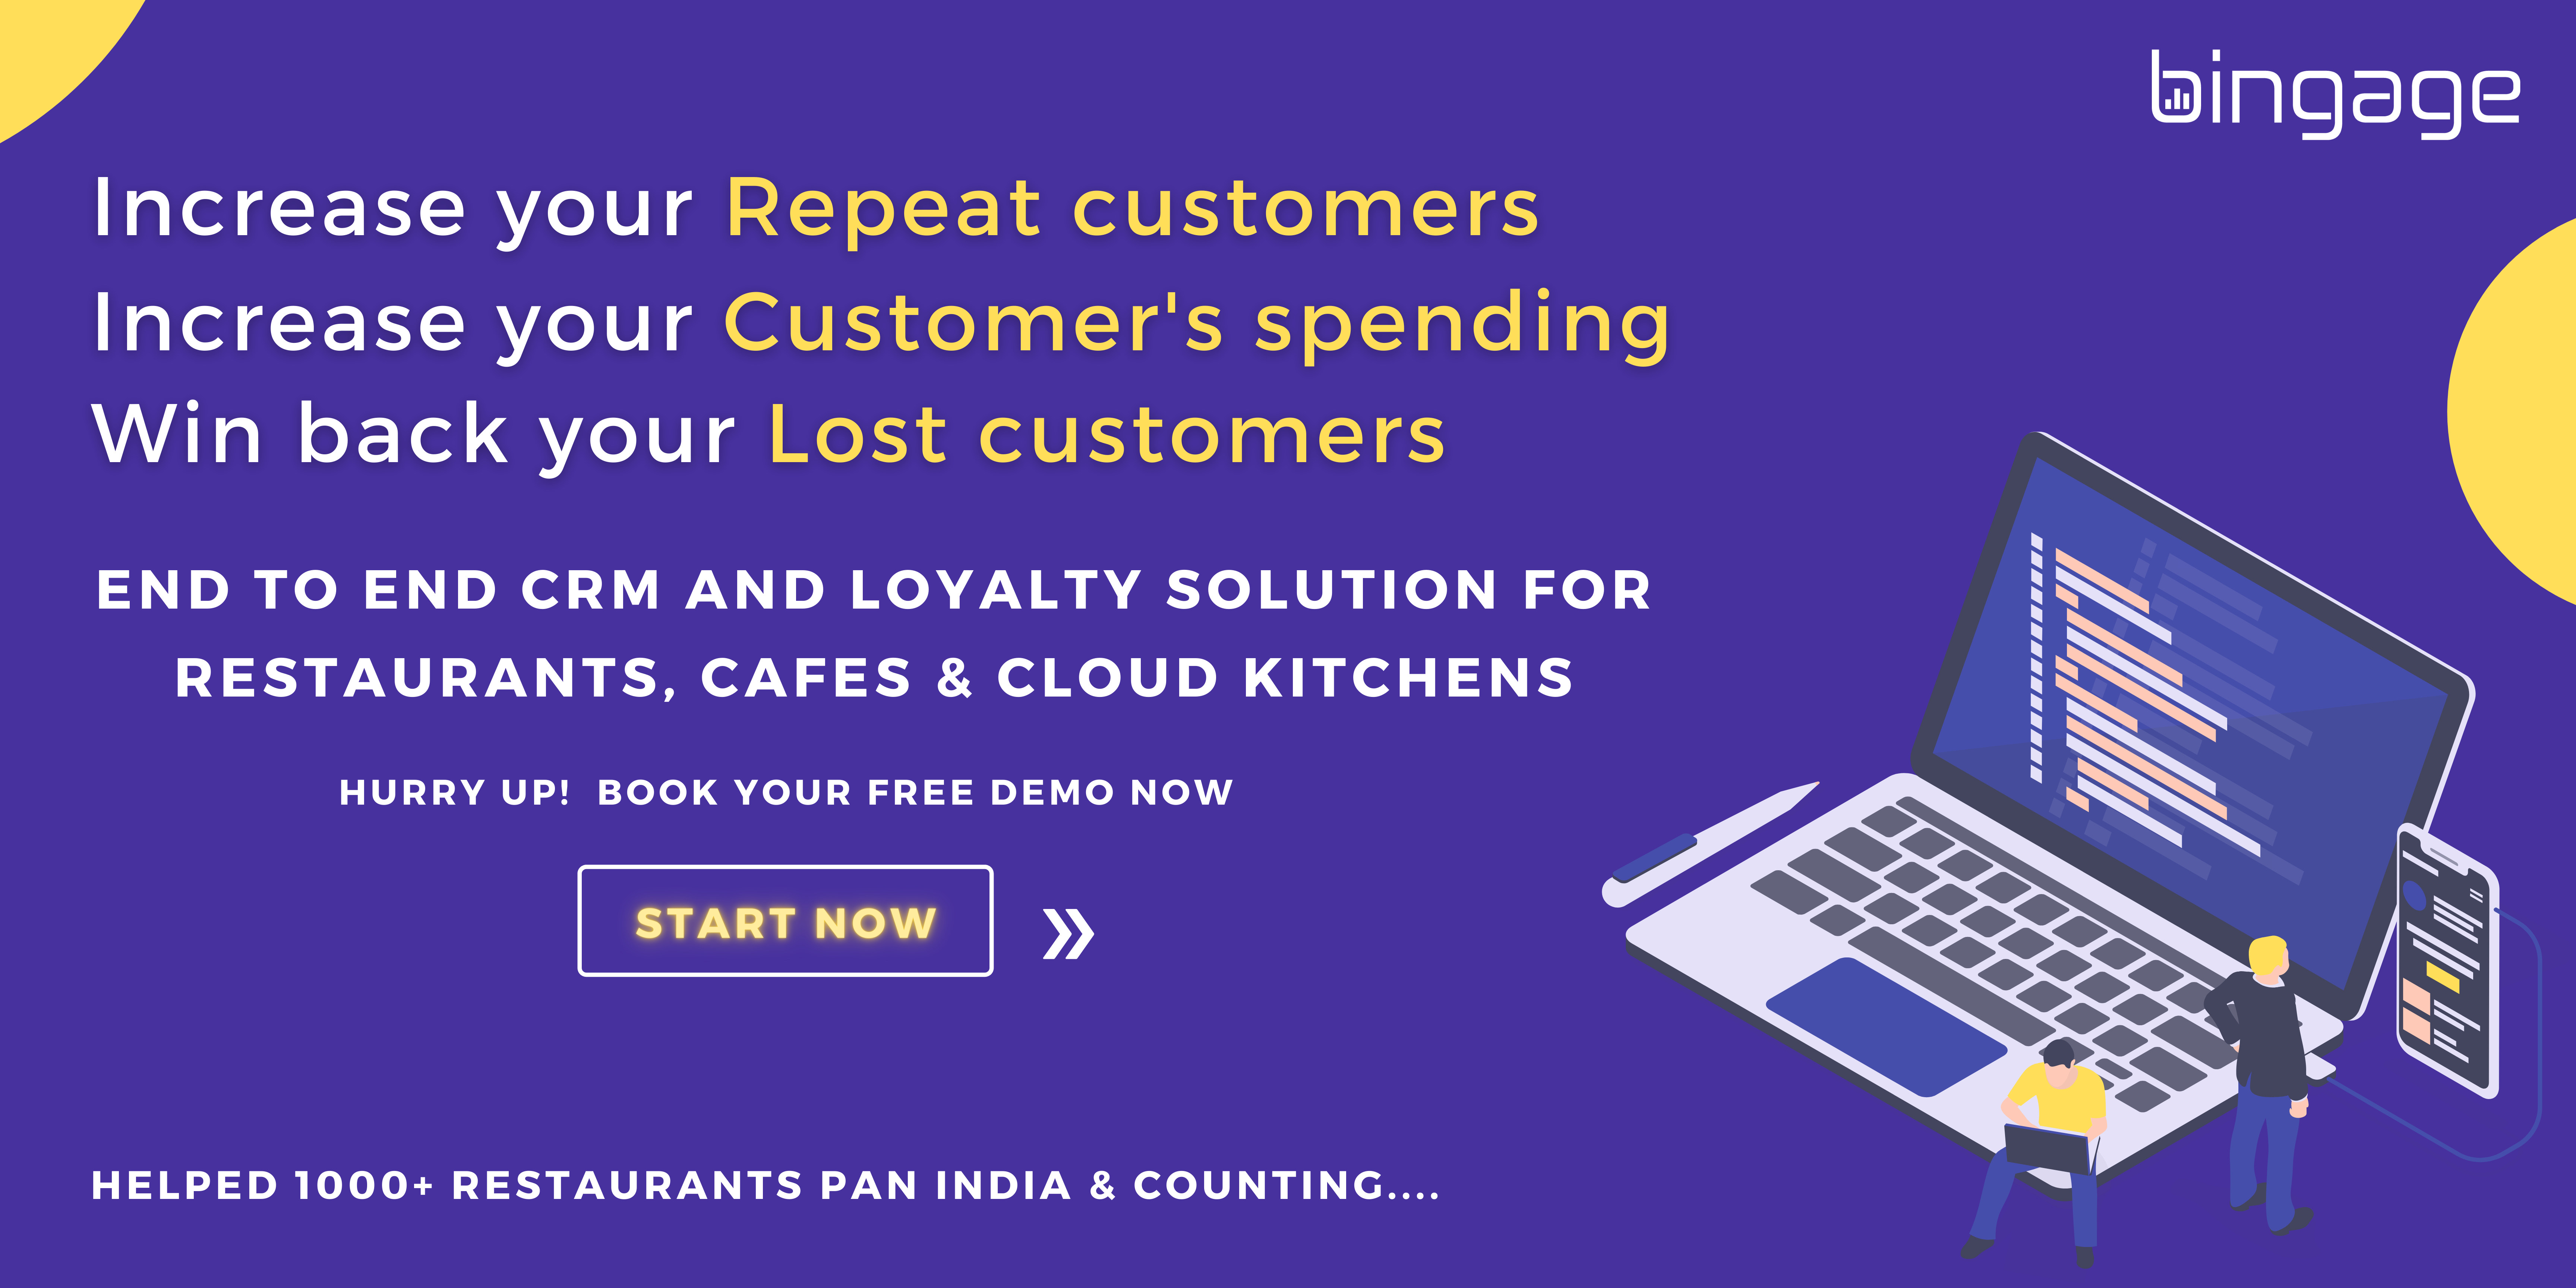 Complete CRM & Loyalty Solution for Restaurants, Cafe and cloud kitchens.